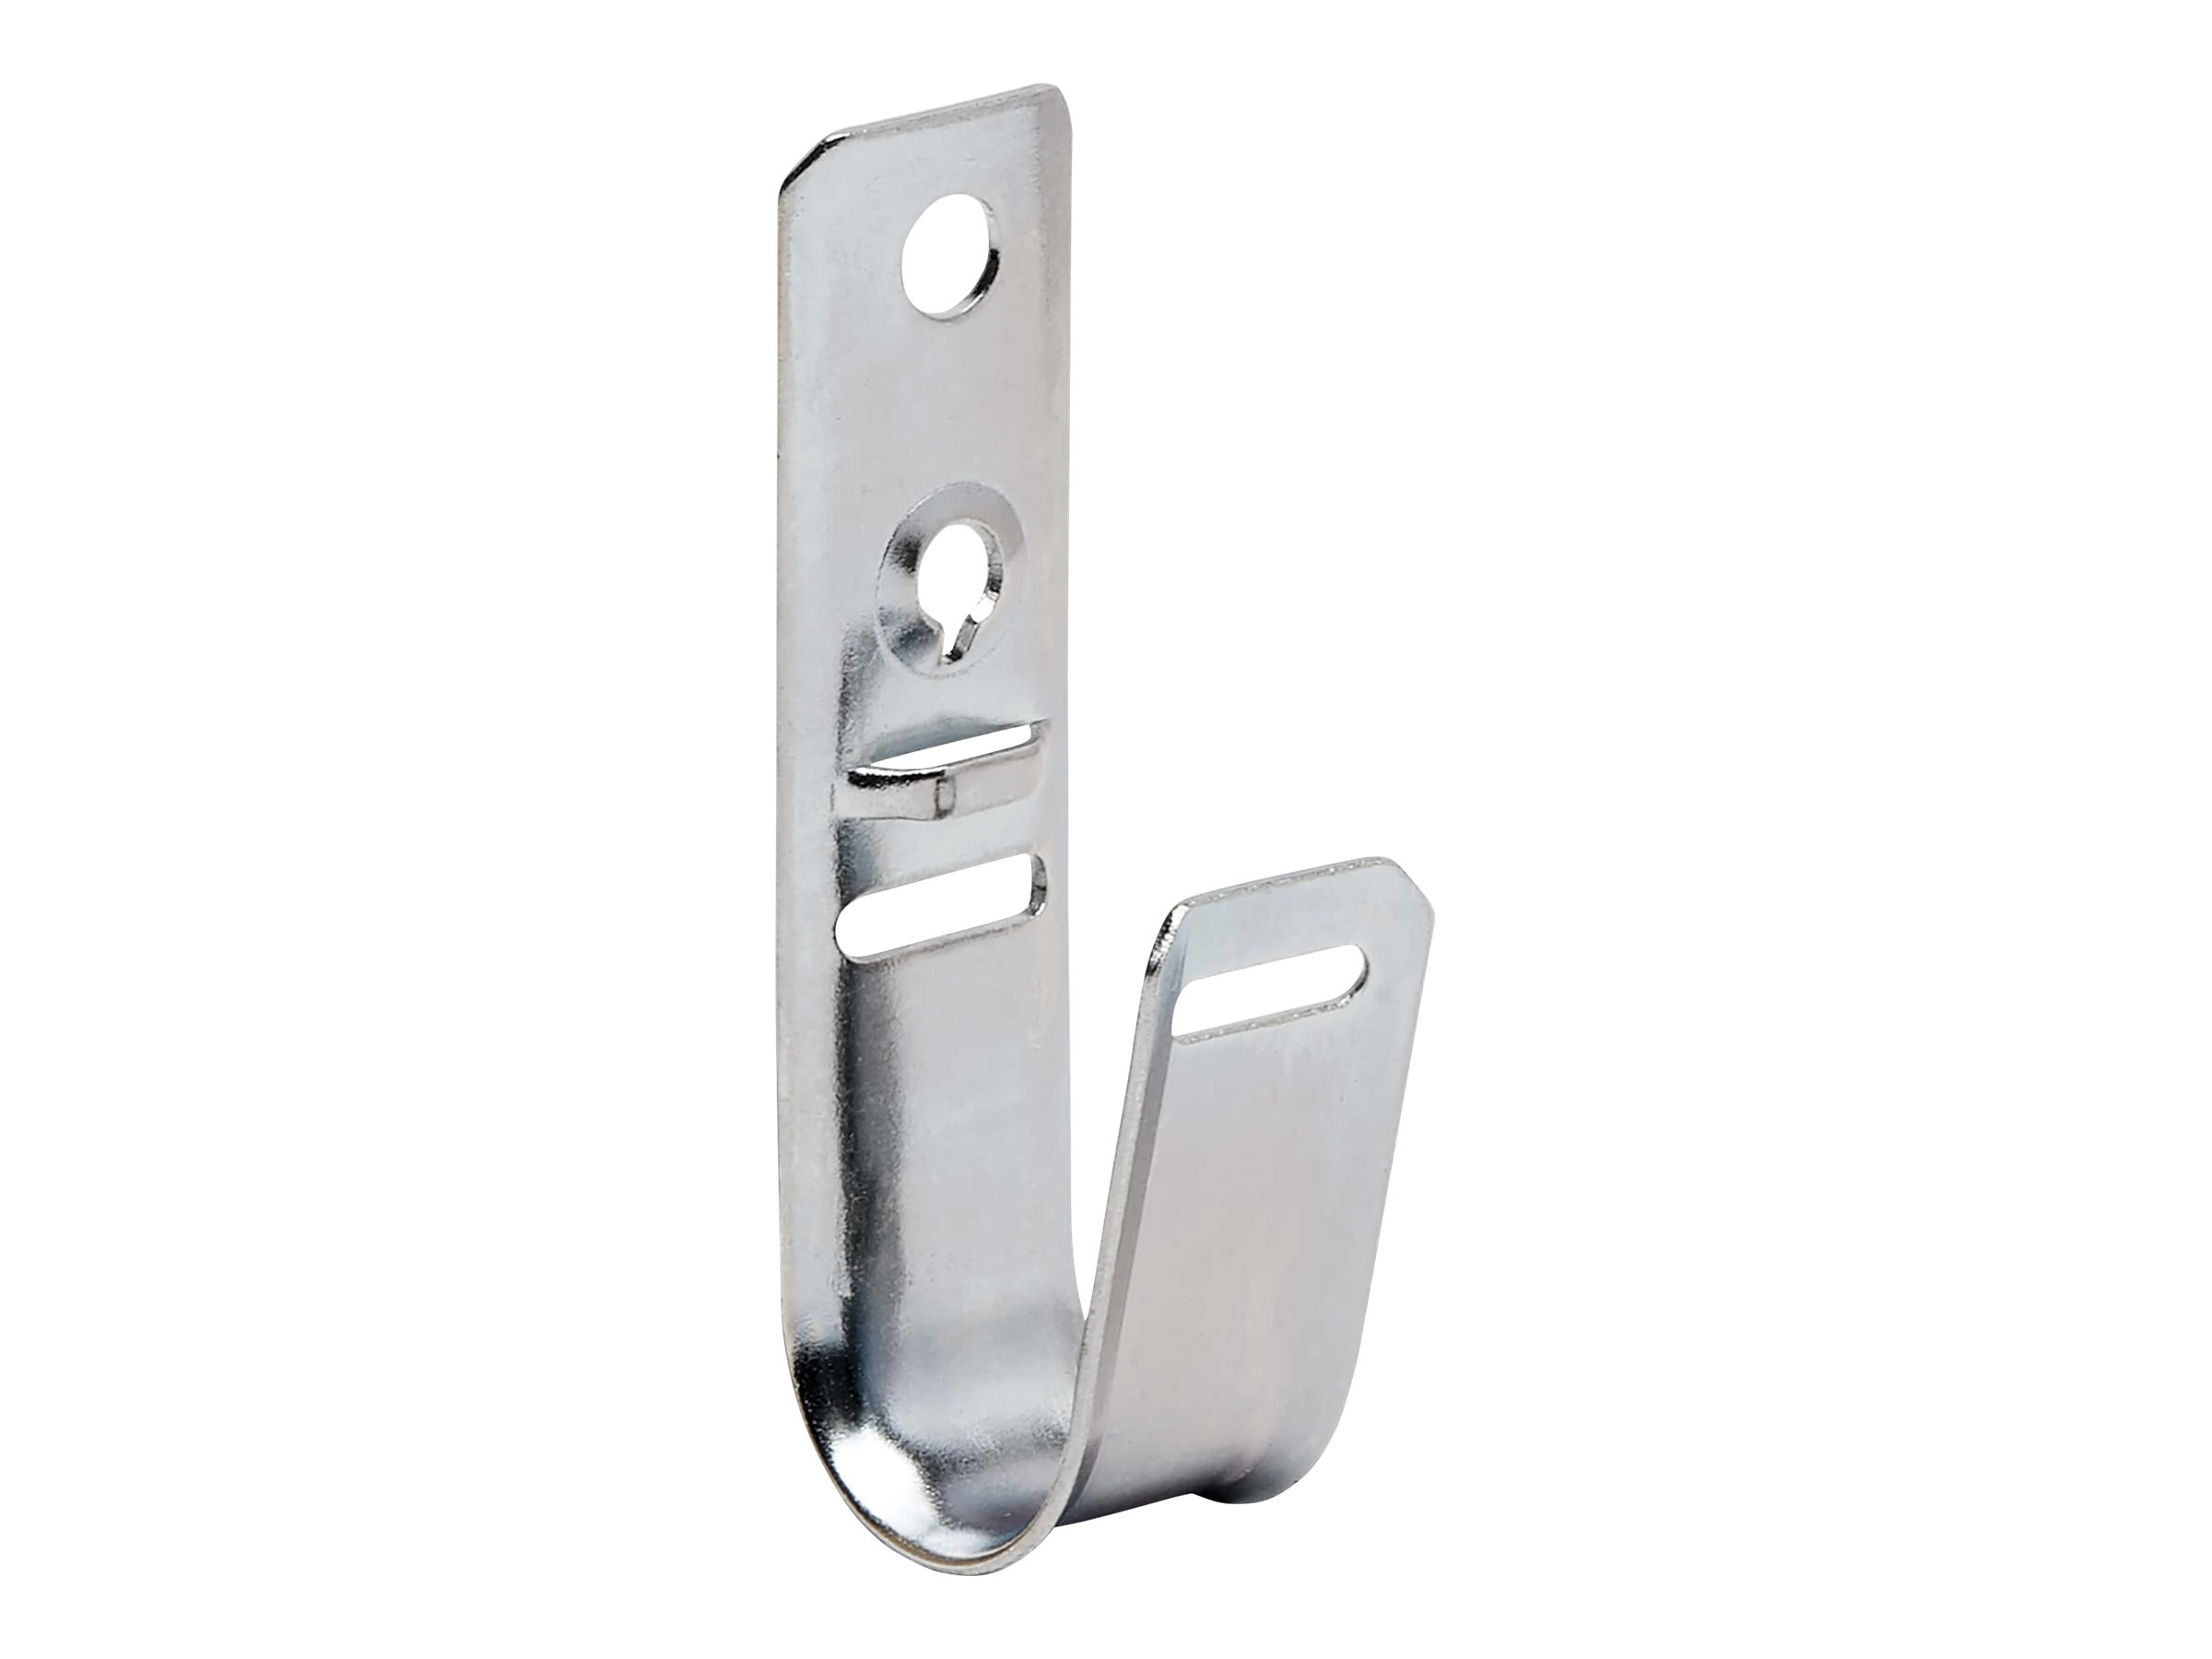 """Tripp Lite J-Hook Cable Support - 3/4"""", Wall Mount, Galvanized Steel, 25 Pack - cable hook"""